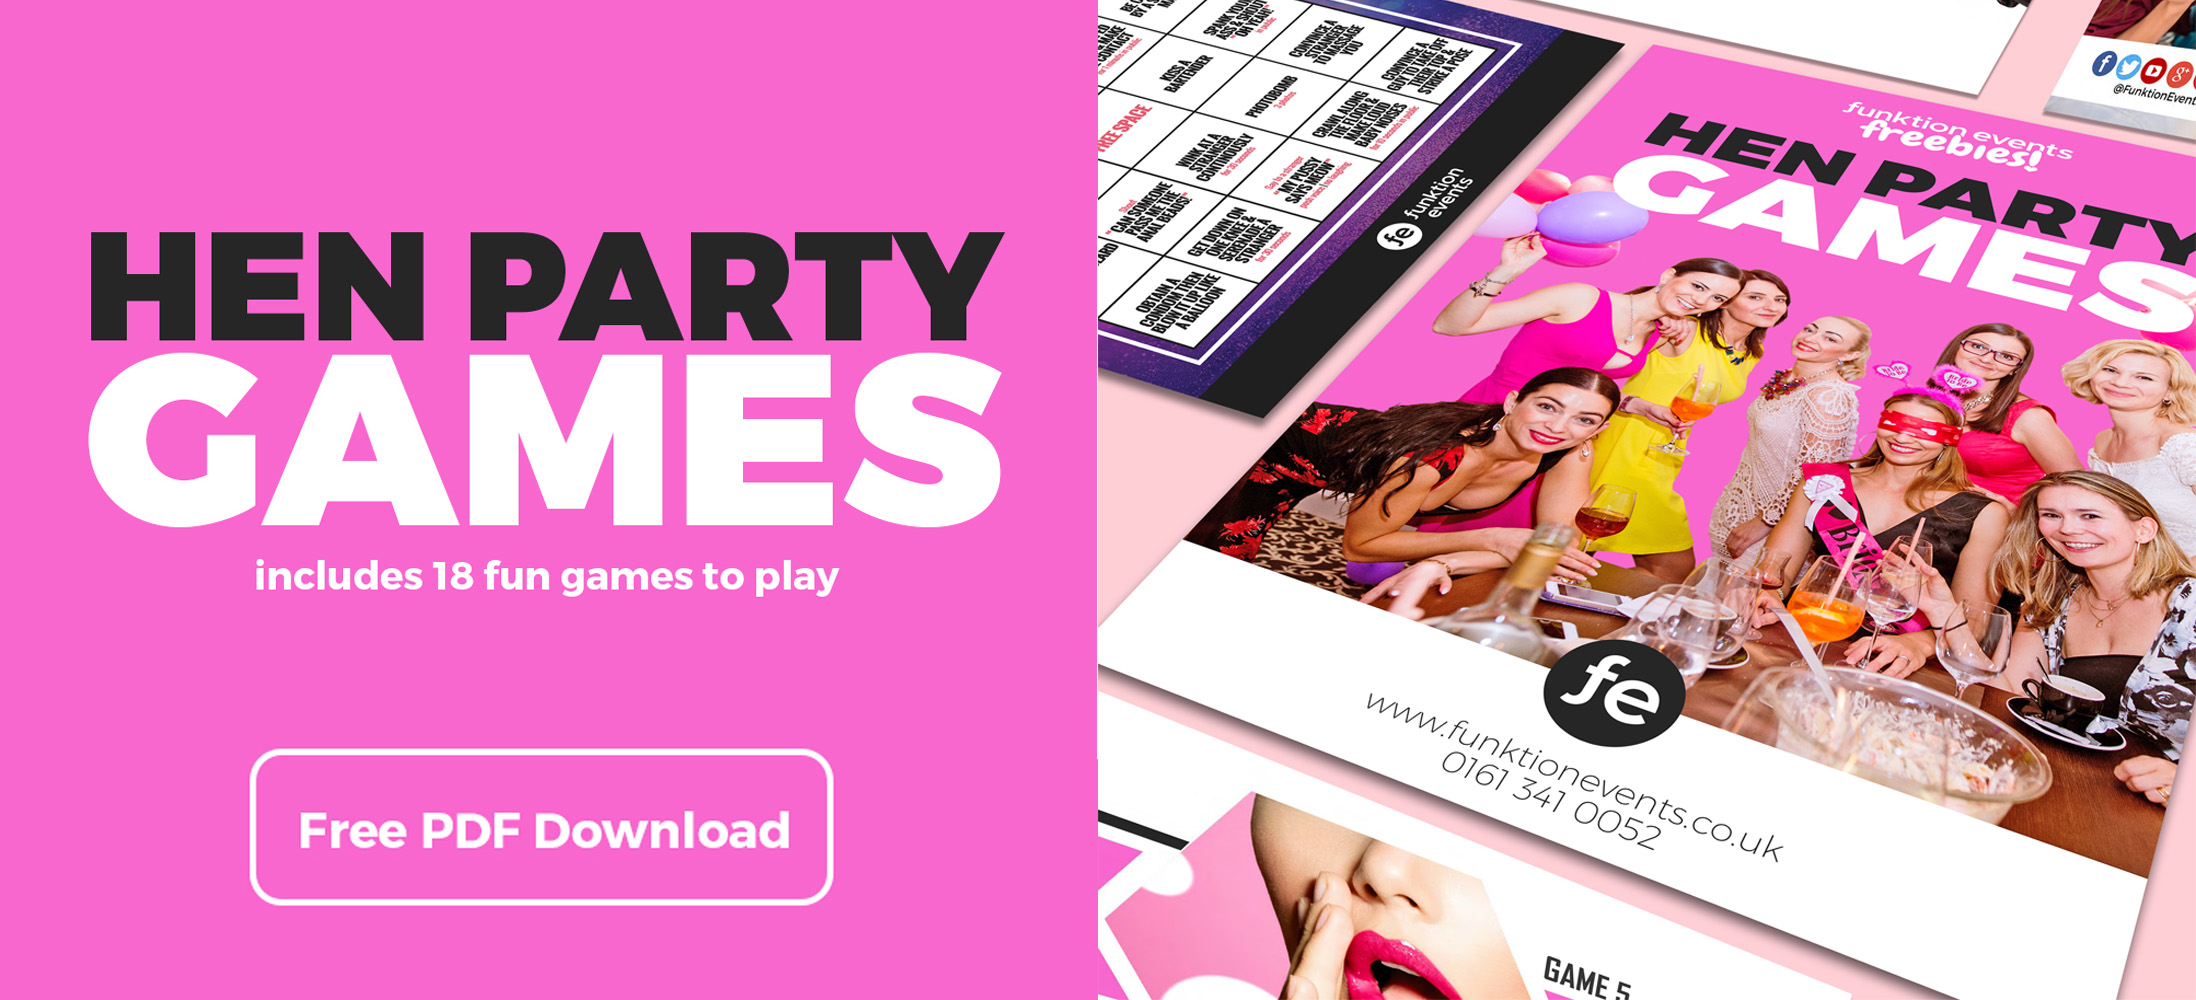 What About a Weekend in London - Hen Party Games